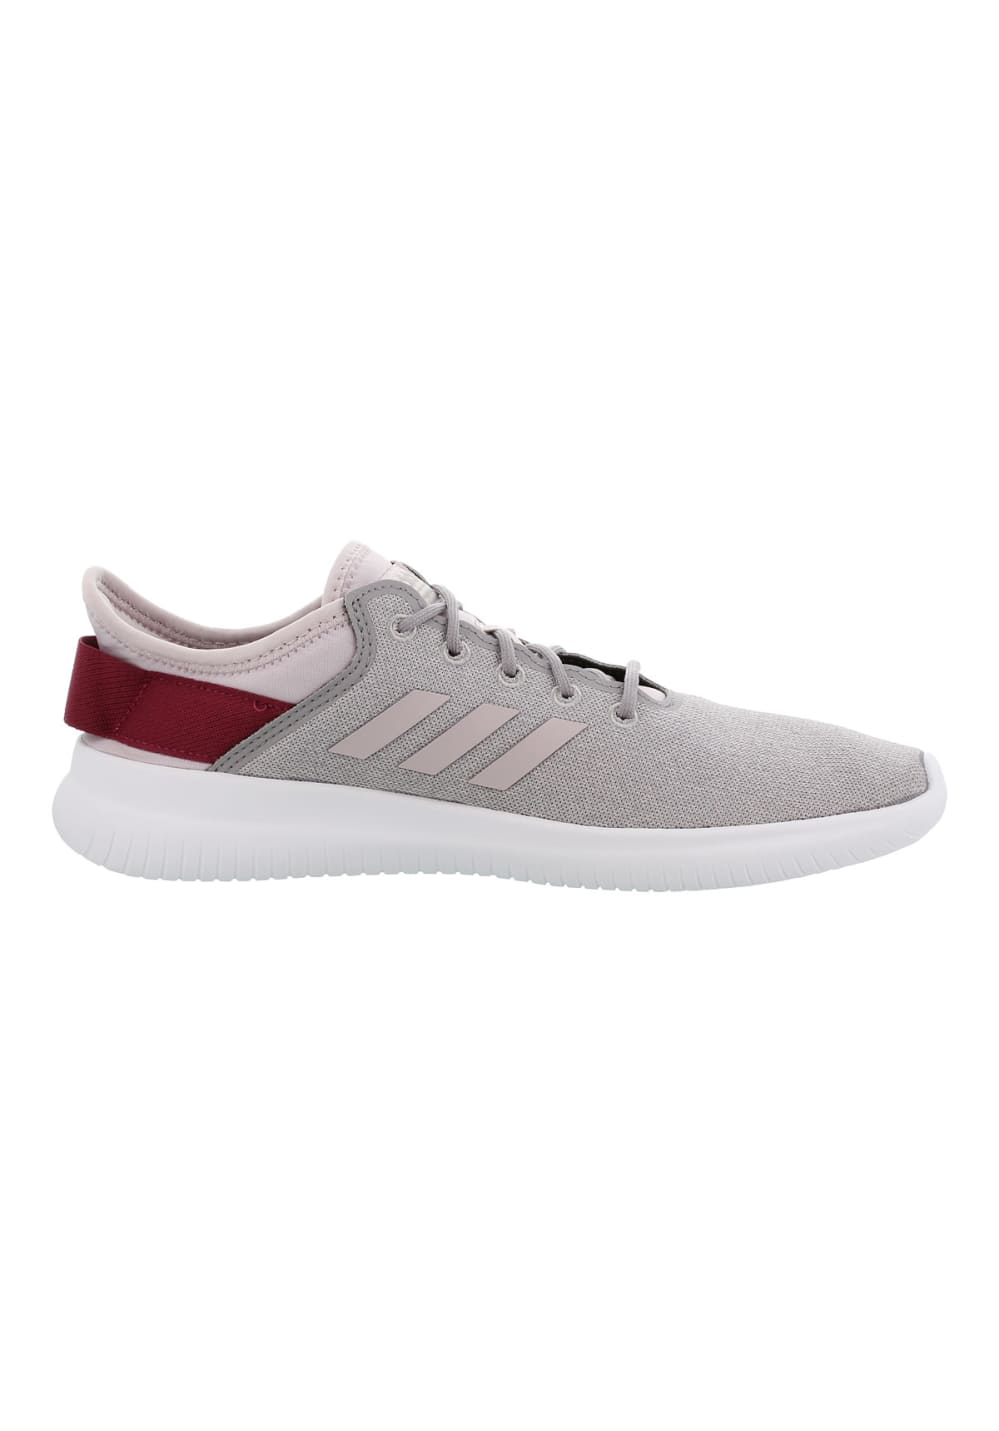 b8fed300d54 Next. -60%. adidas neo. Cloudfoam QT Flex - Running shoes for Women.  Regular ...